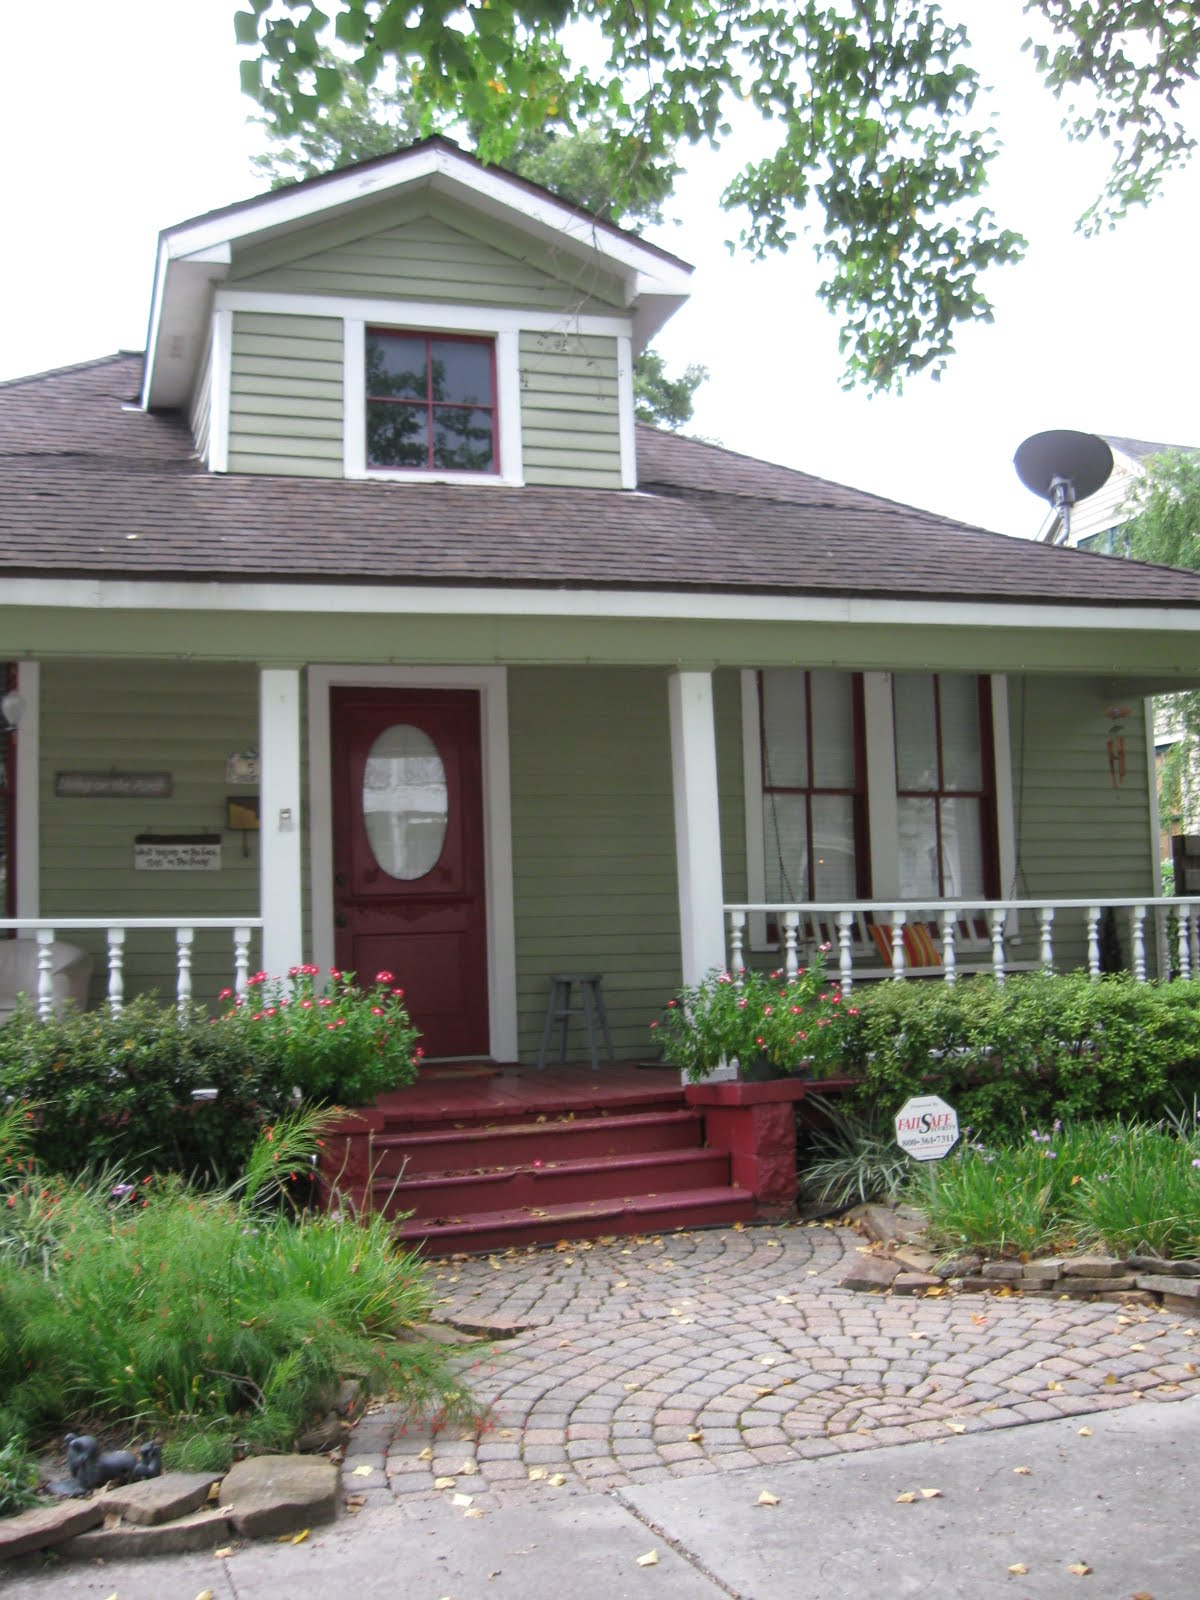 The OtHeR HoUsToN: 1930 FRONT PORCH BUNGALOW